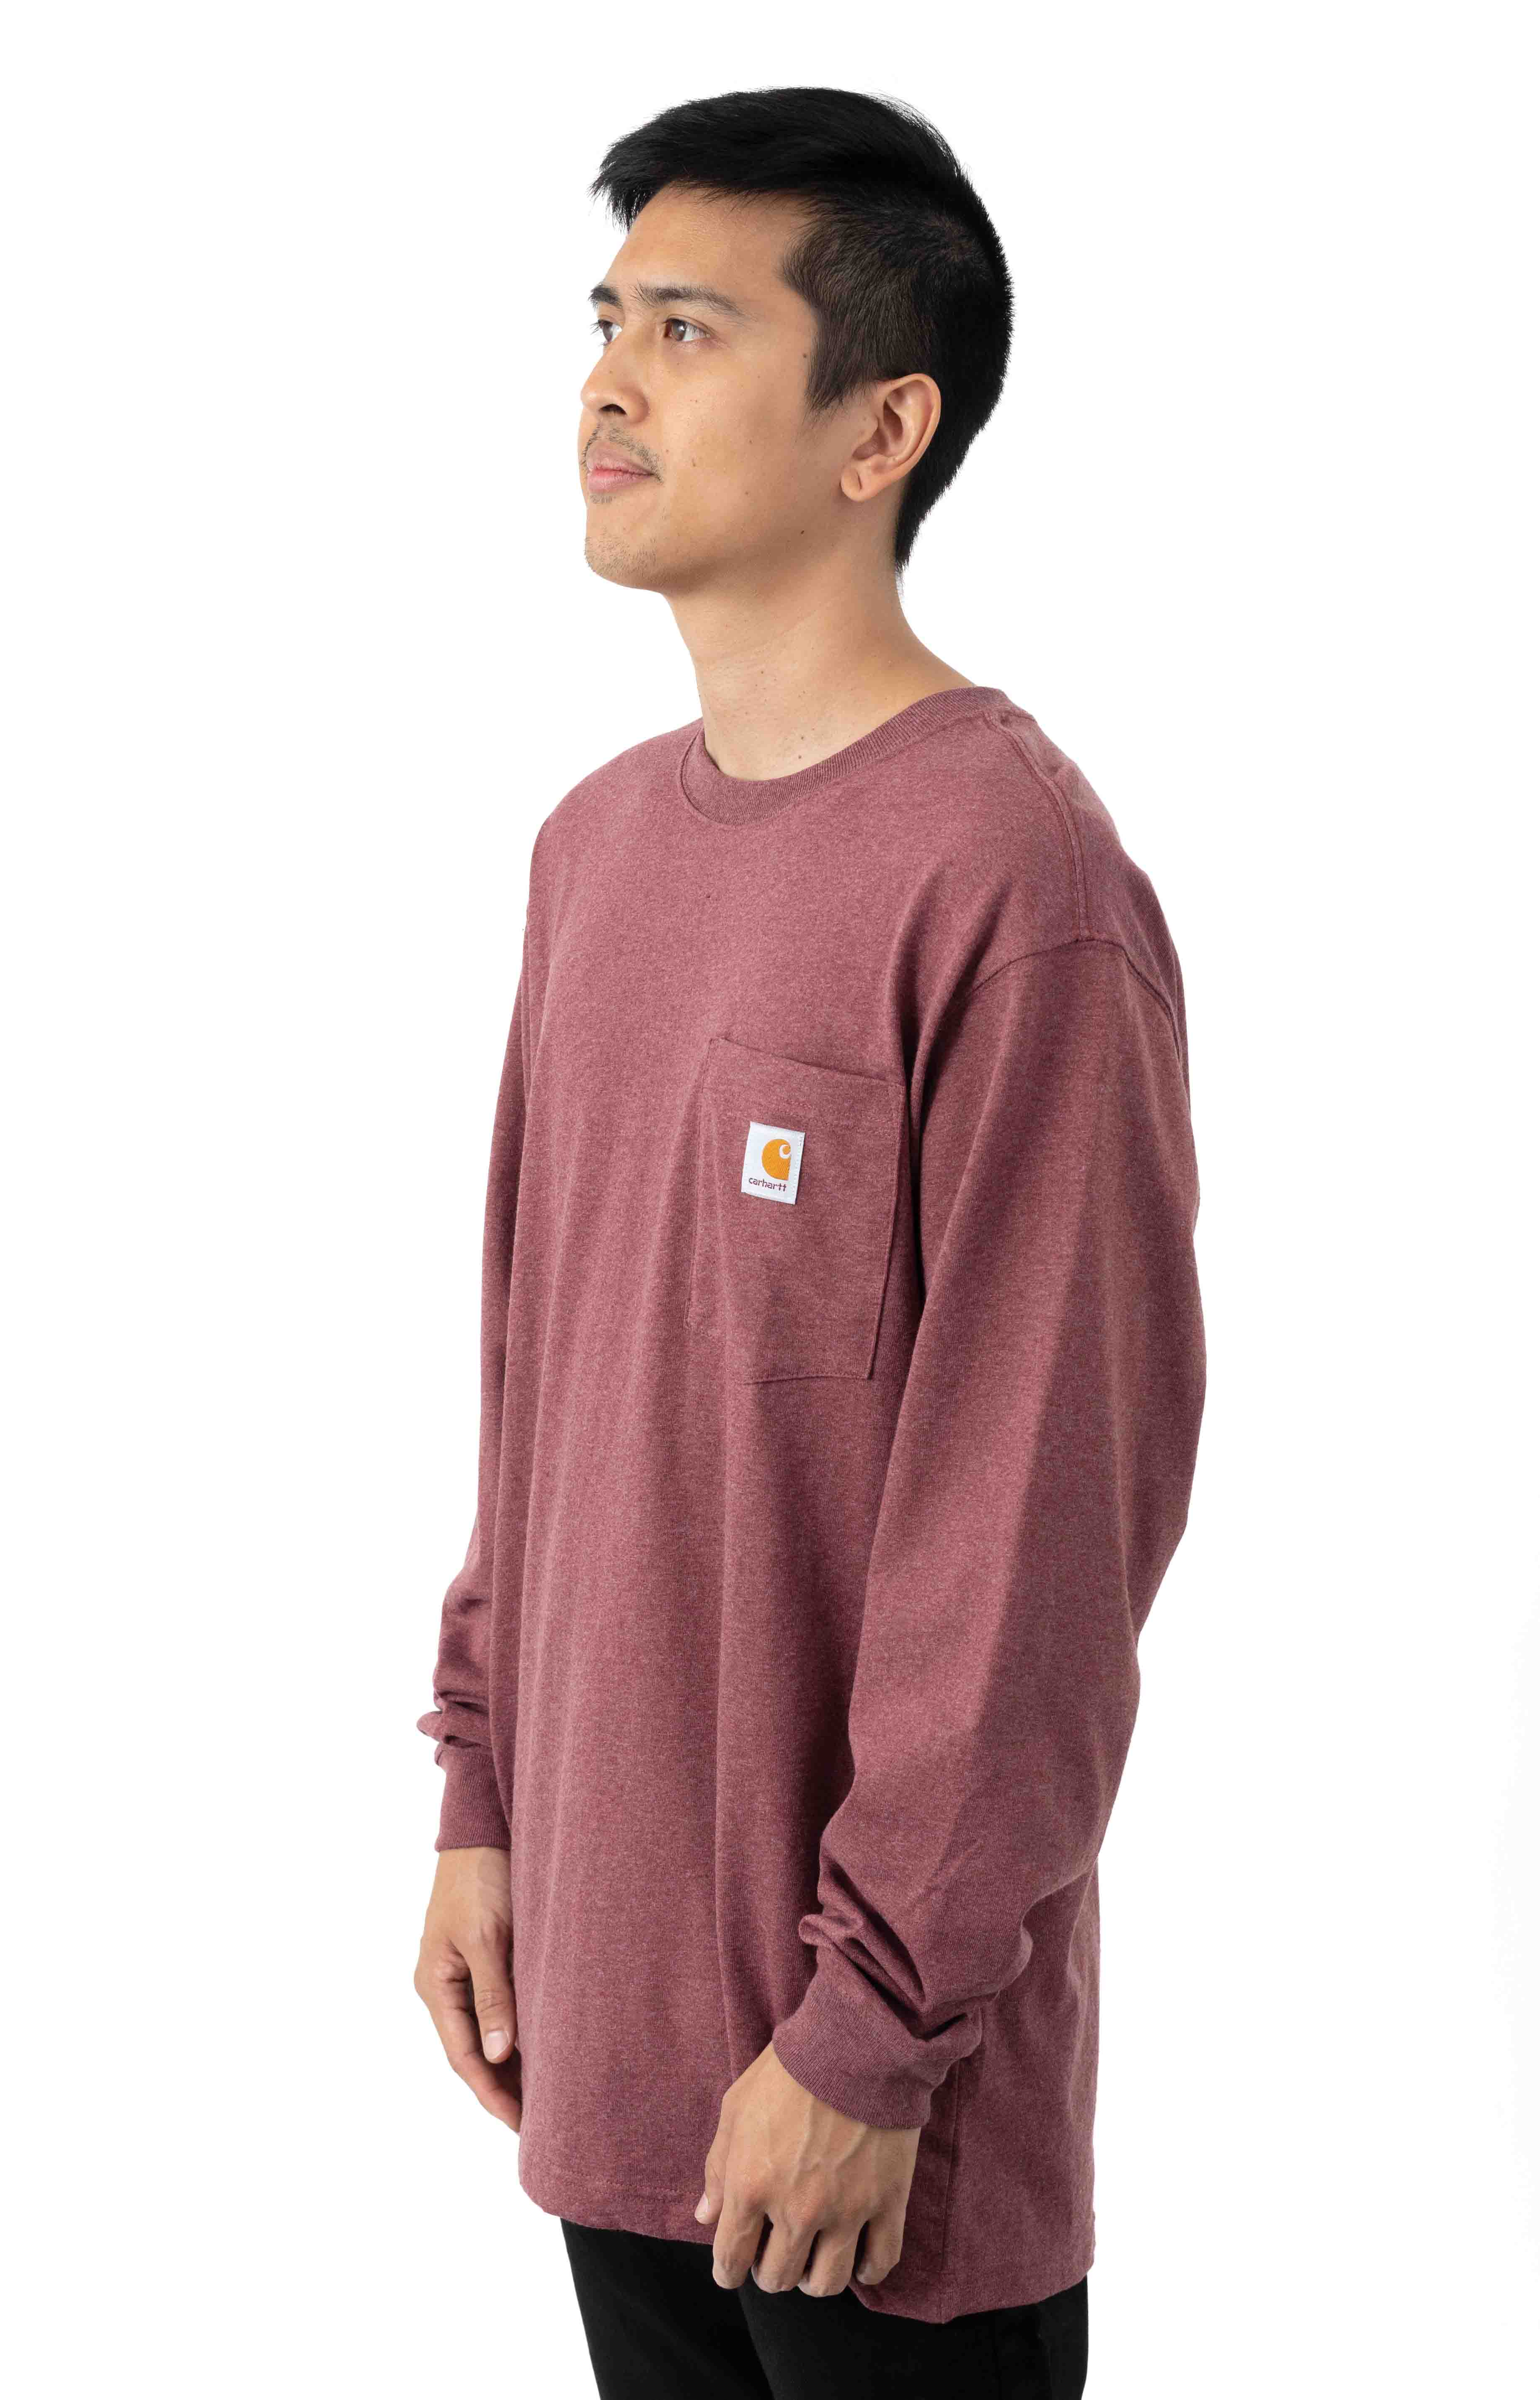 (K126) L/S Workwear Pocket Shirt - Iron Ore Heather  2